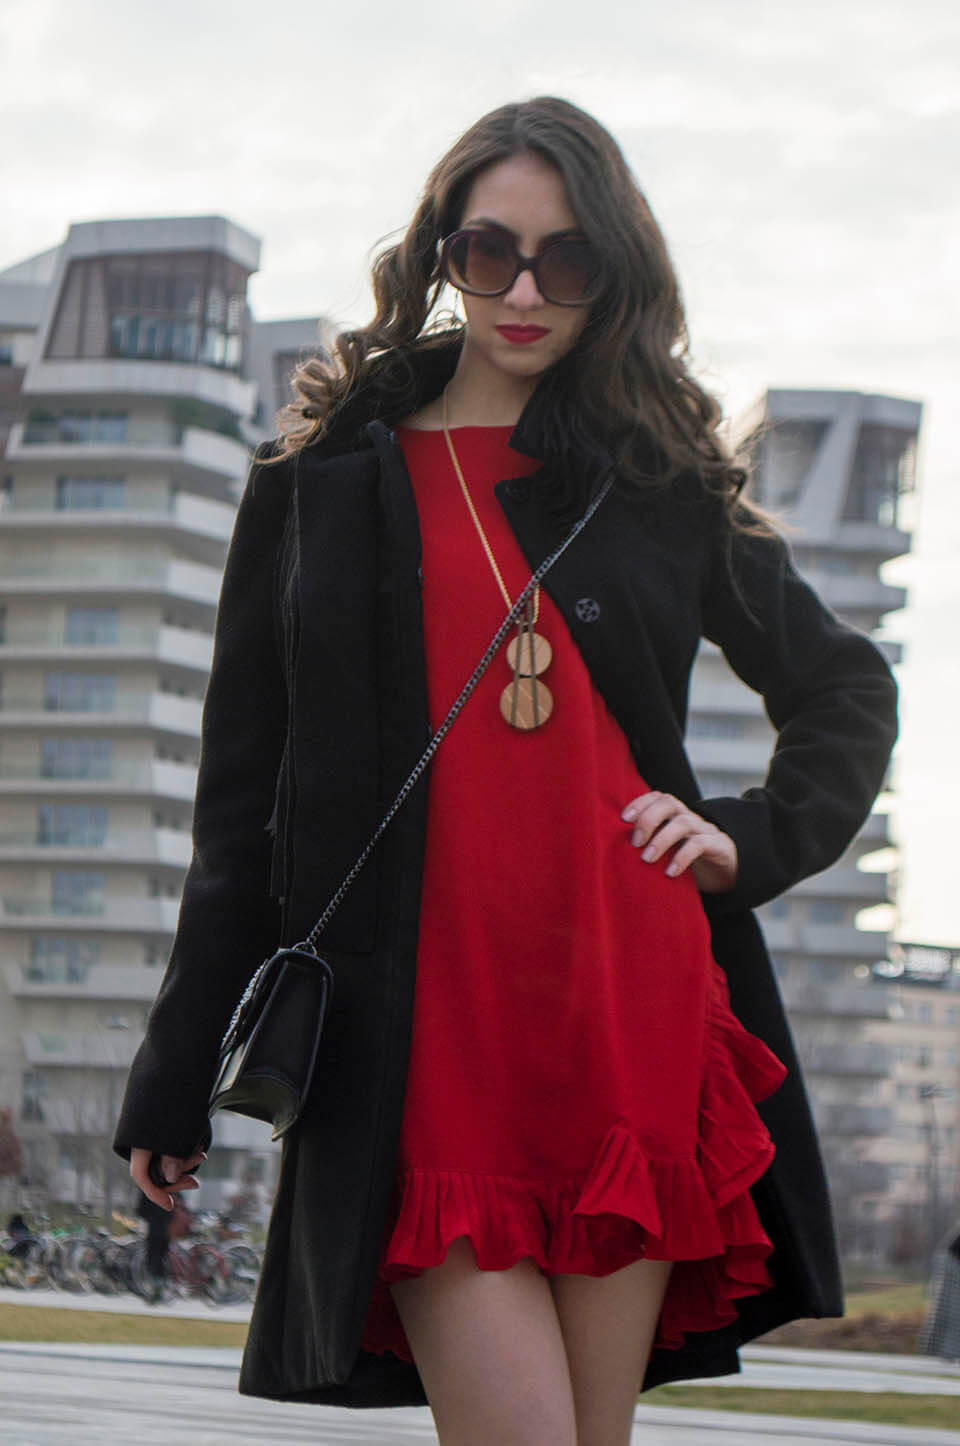 Red dress outfit for fall/winter